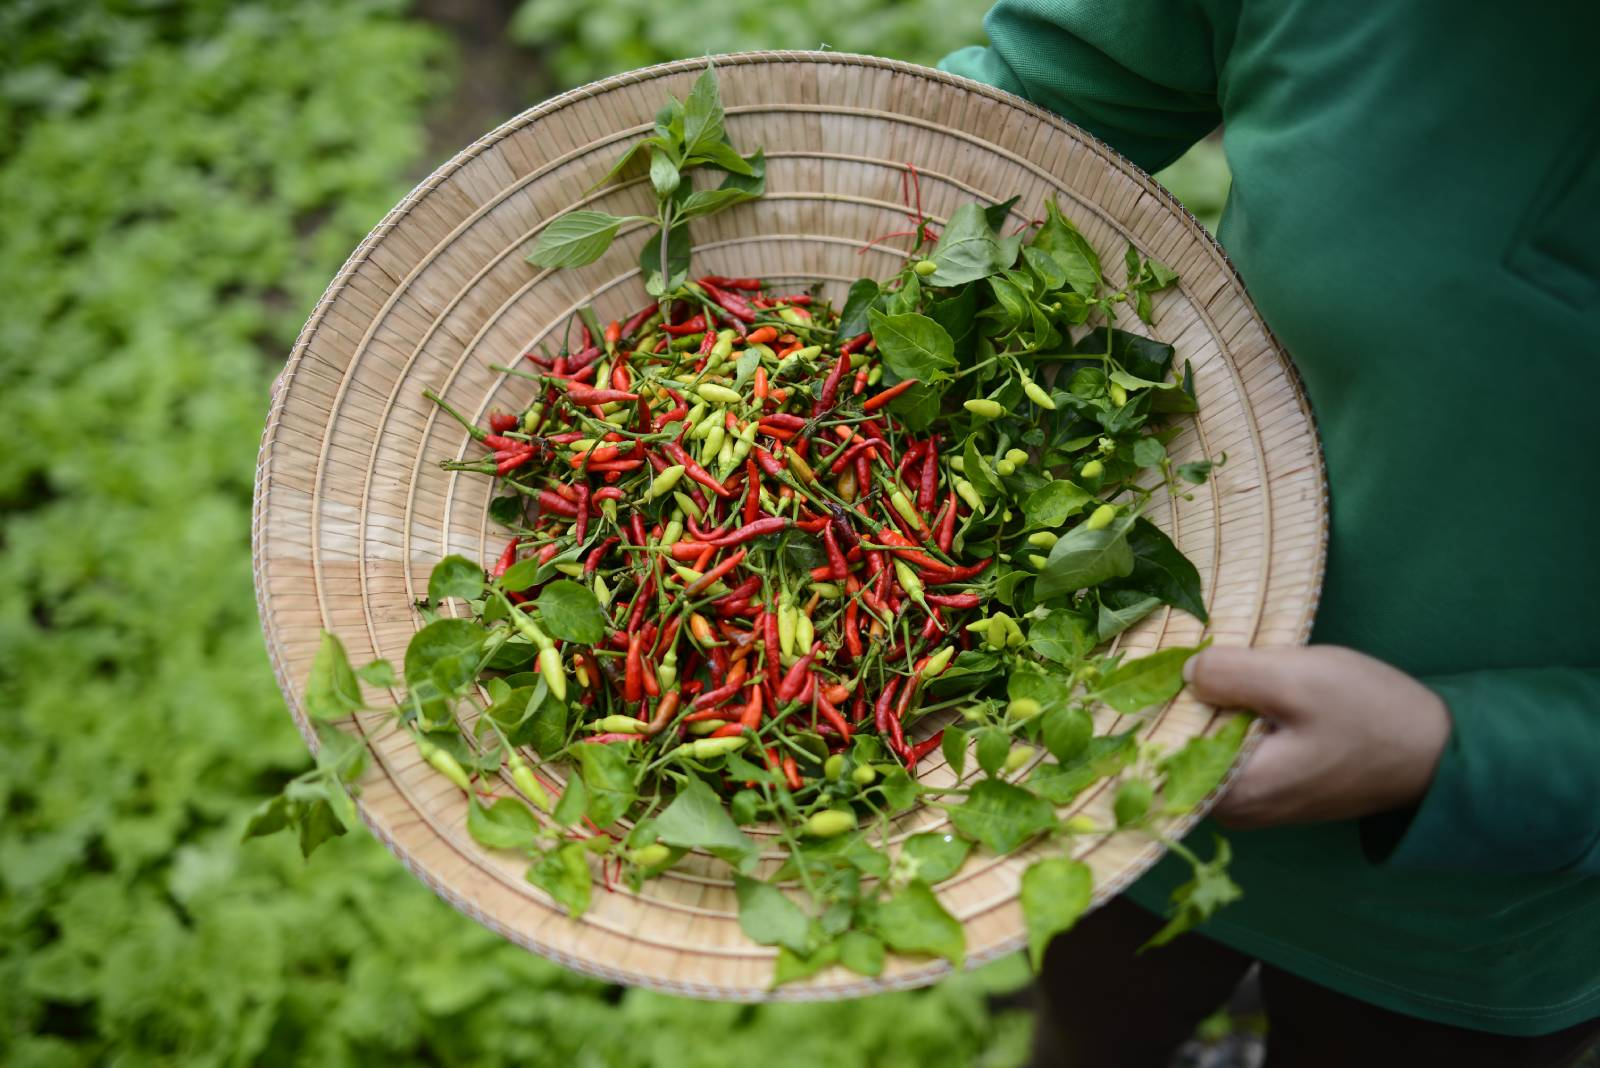 conical hat full of freshly harvested chilies